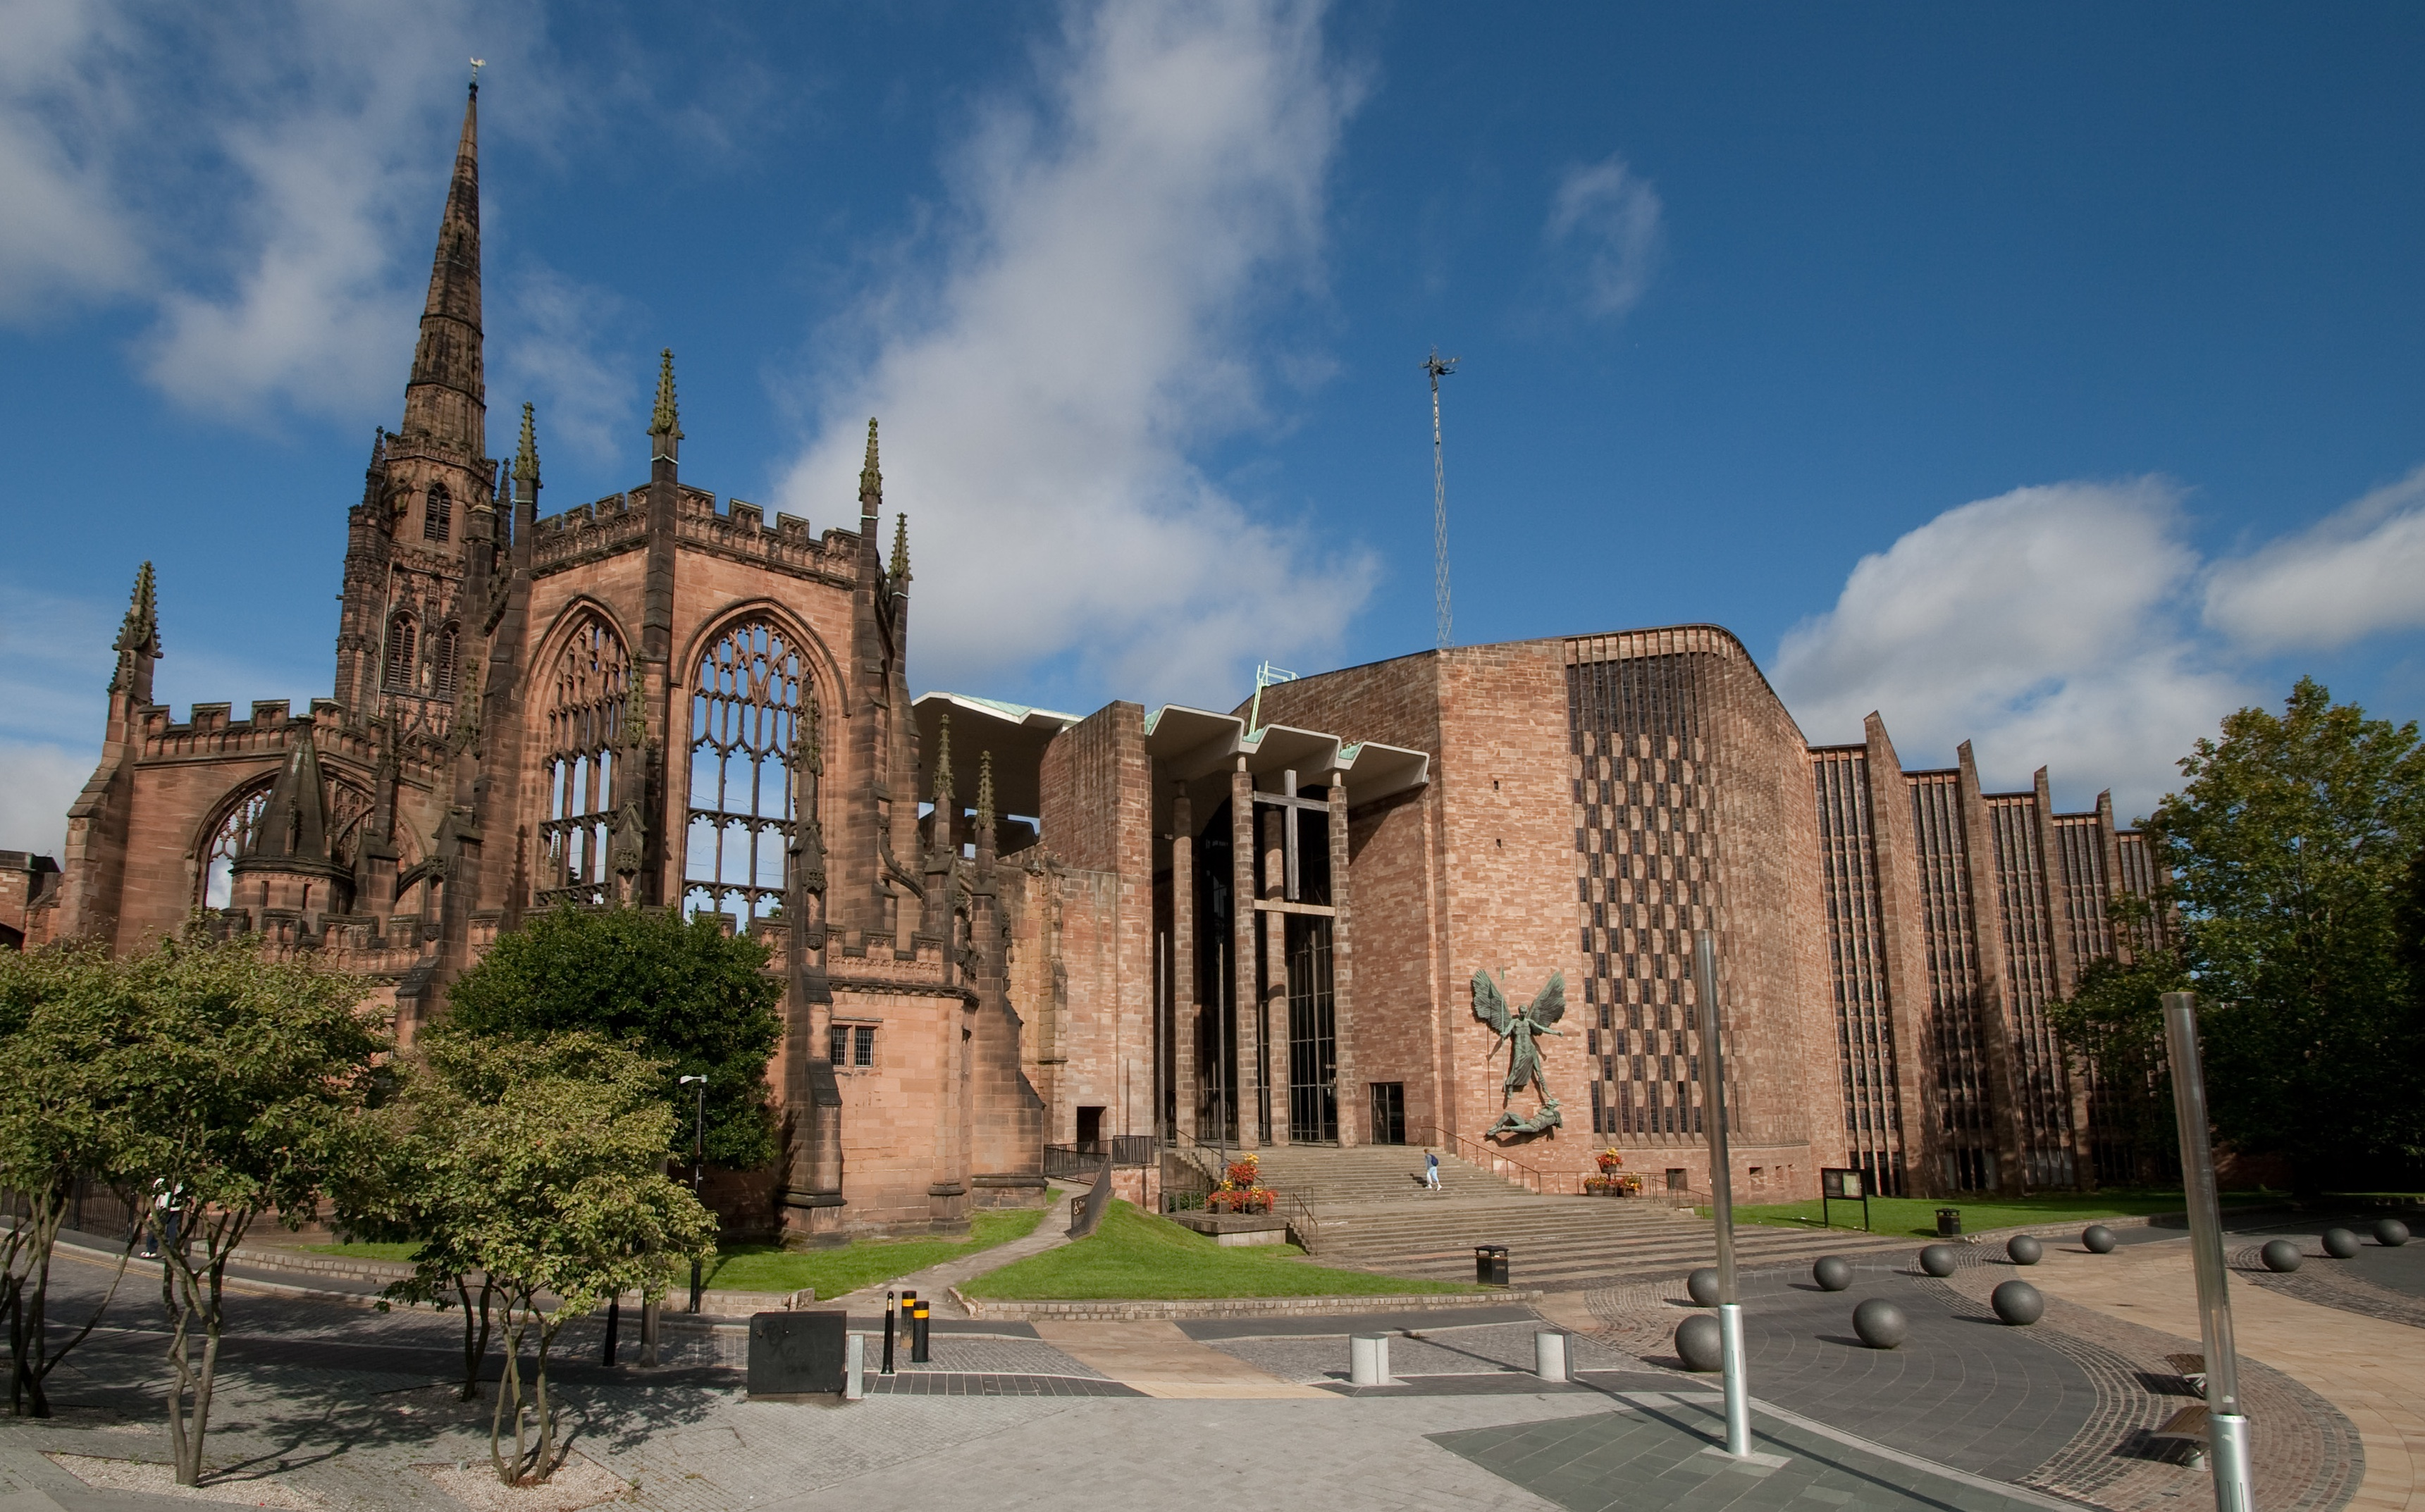 Coventry Cathredral